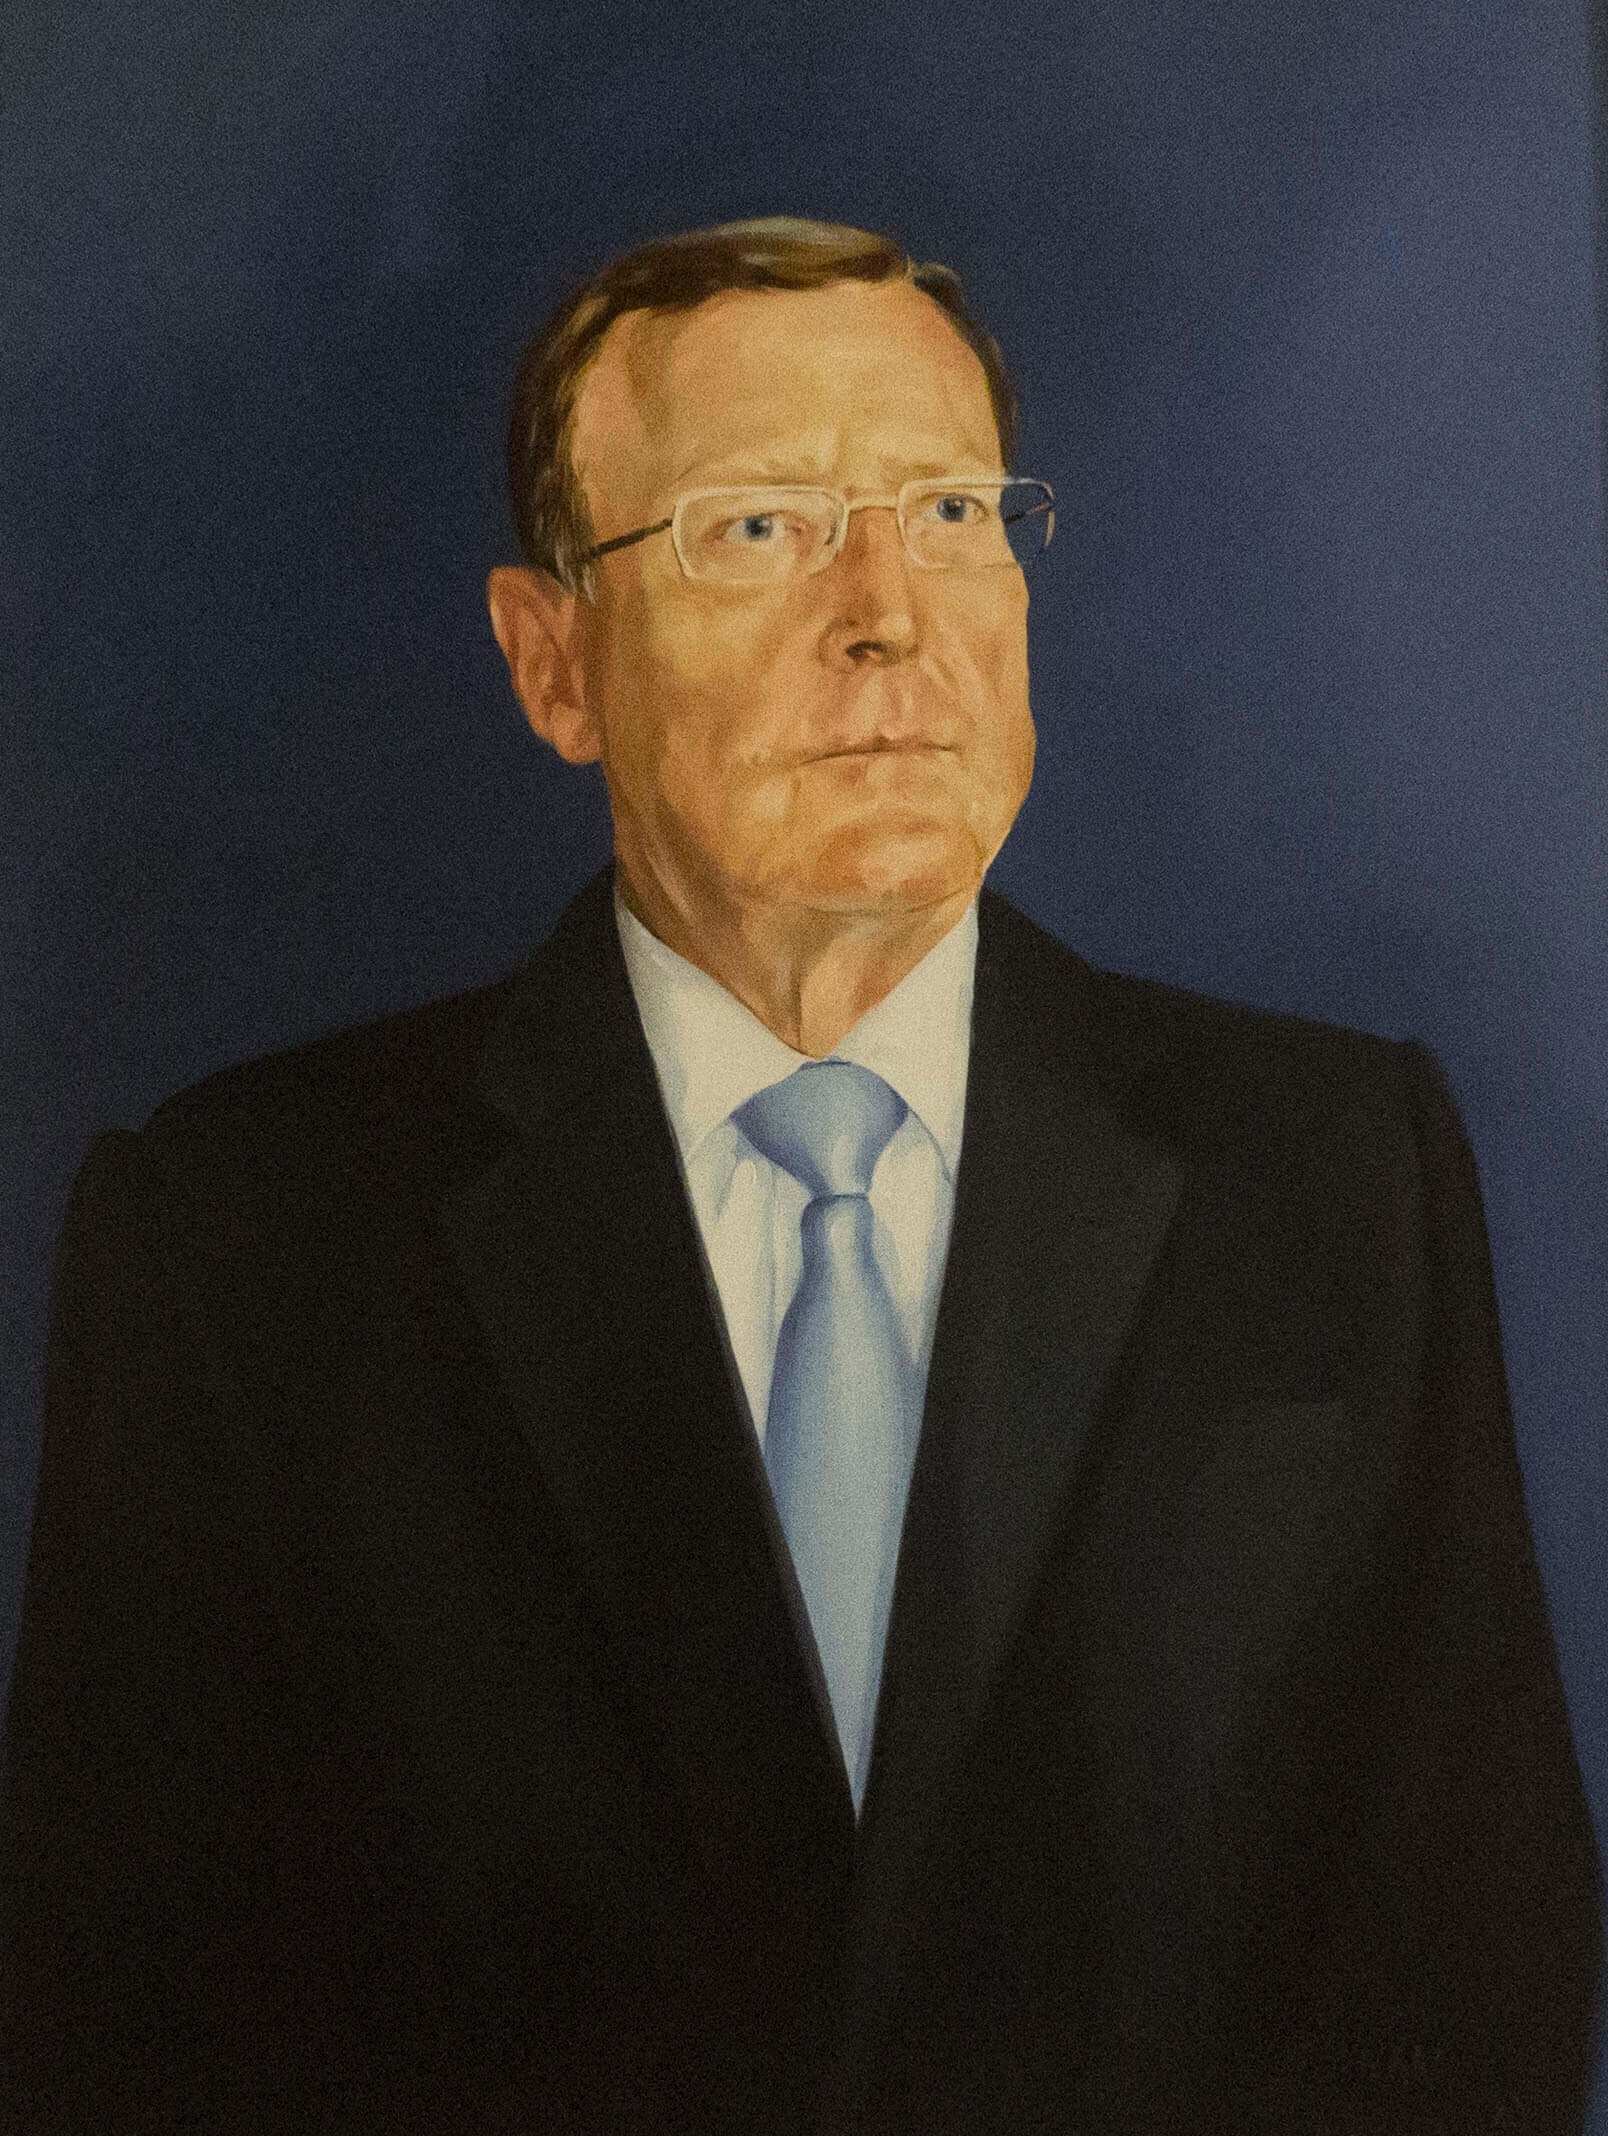 Portrait of The Rt Hon The Lord Trimble